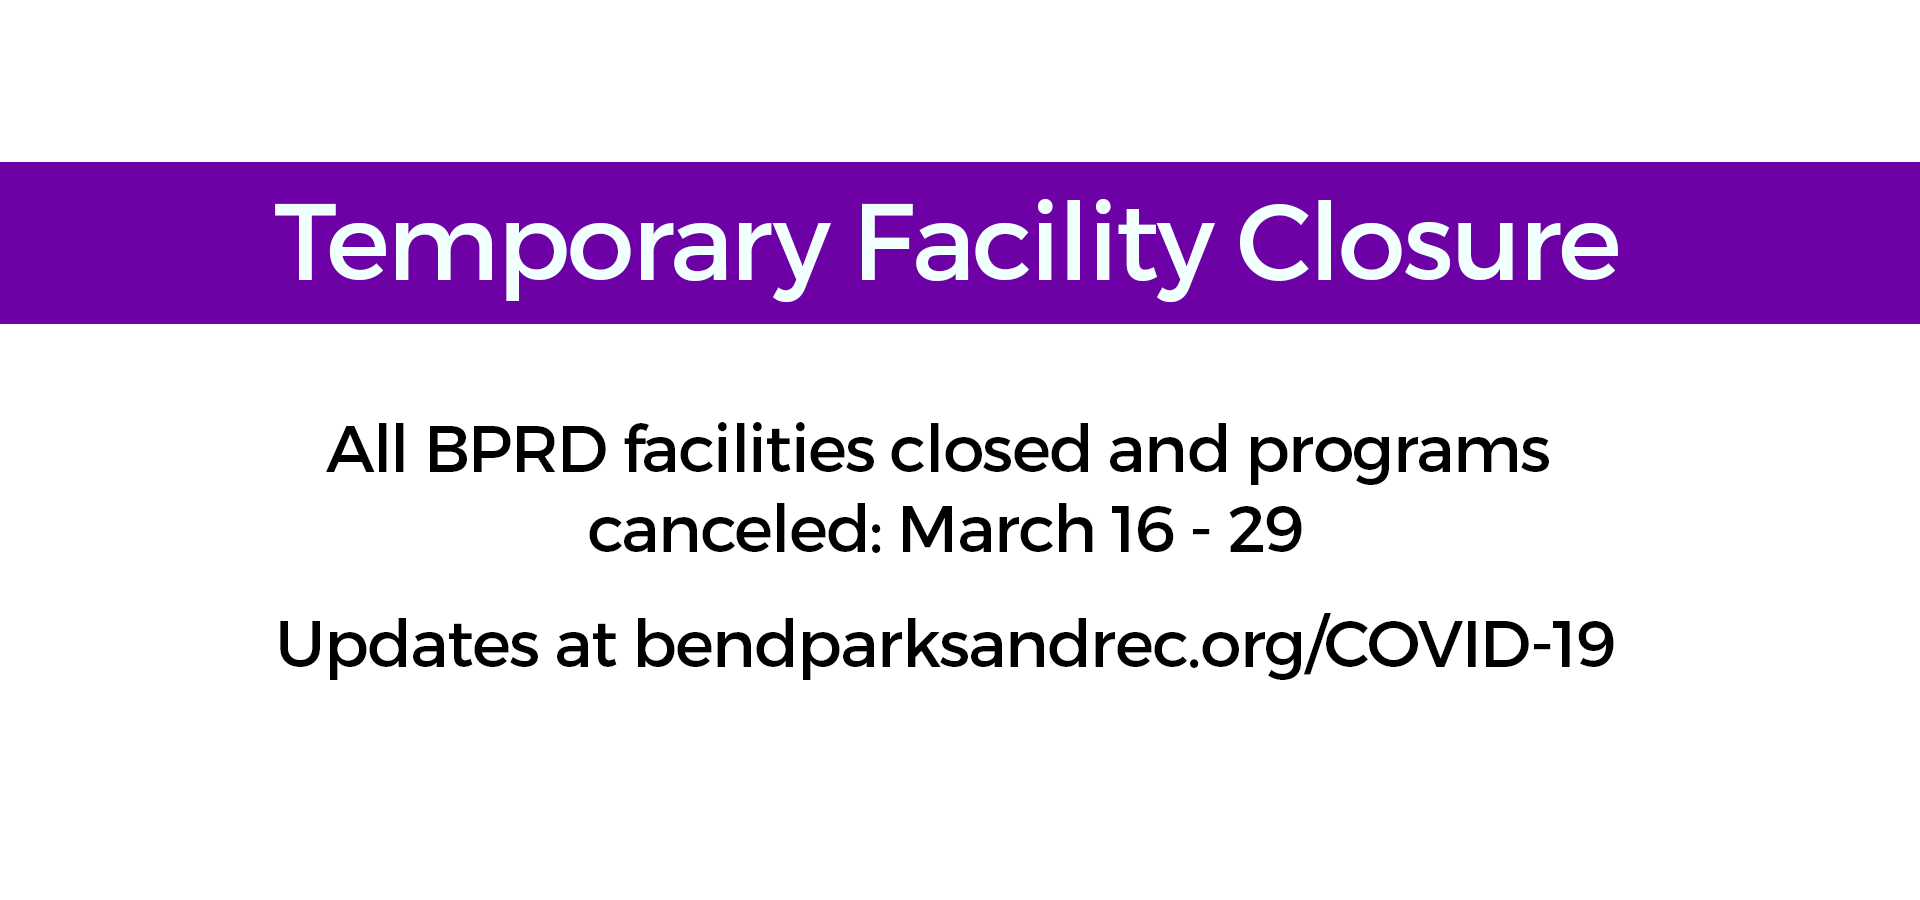 COVID All Facilities Closed March 16 - 29